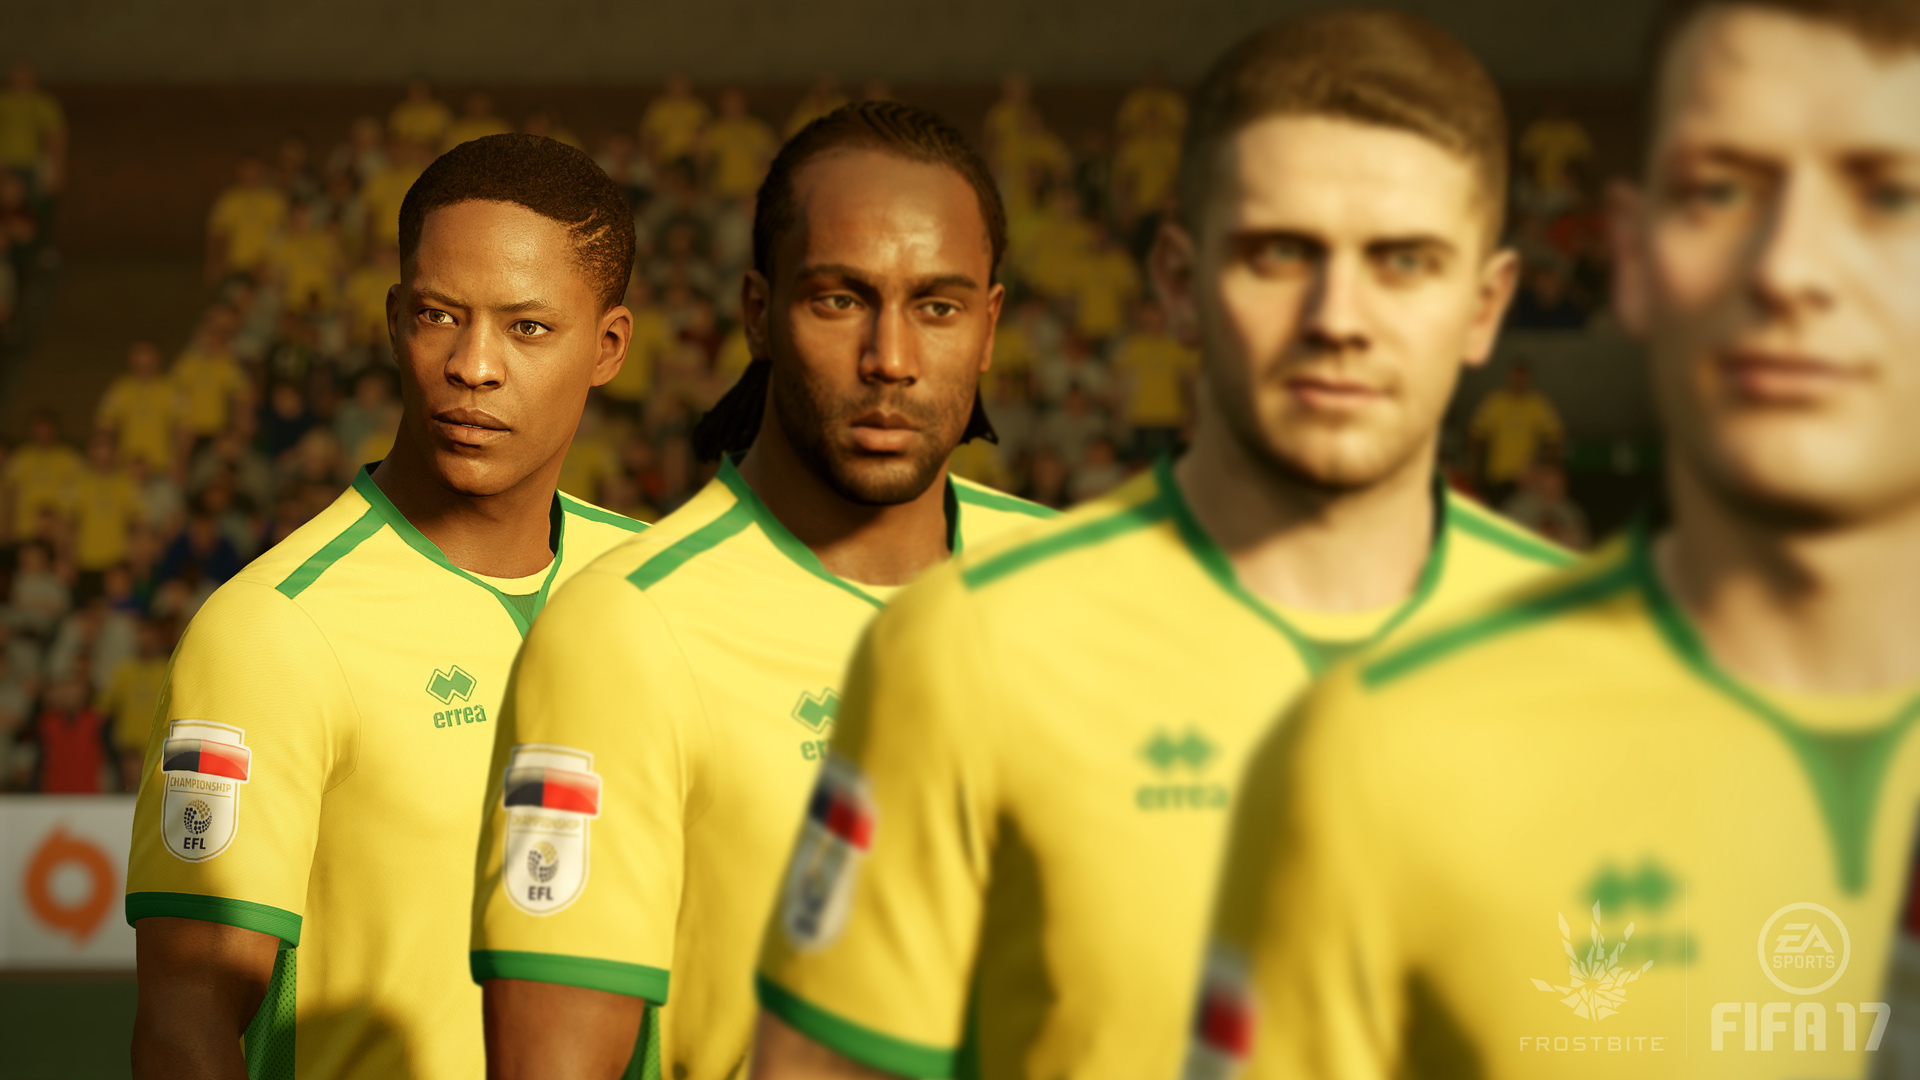 super popular 3b40c dbb15 FIFA 18 The Journey mode: Alex Hunter's story so far and ...